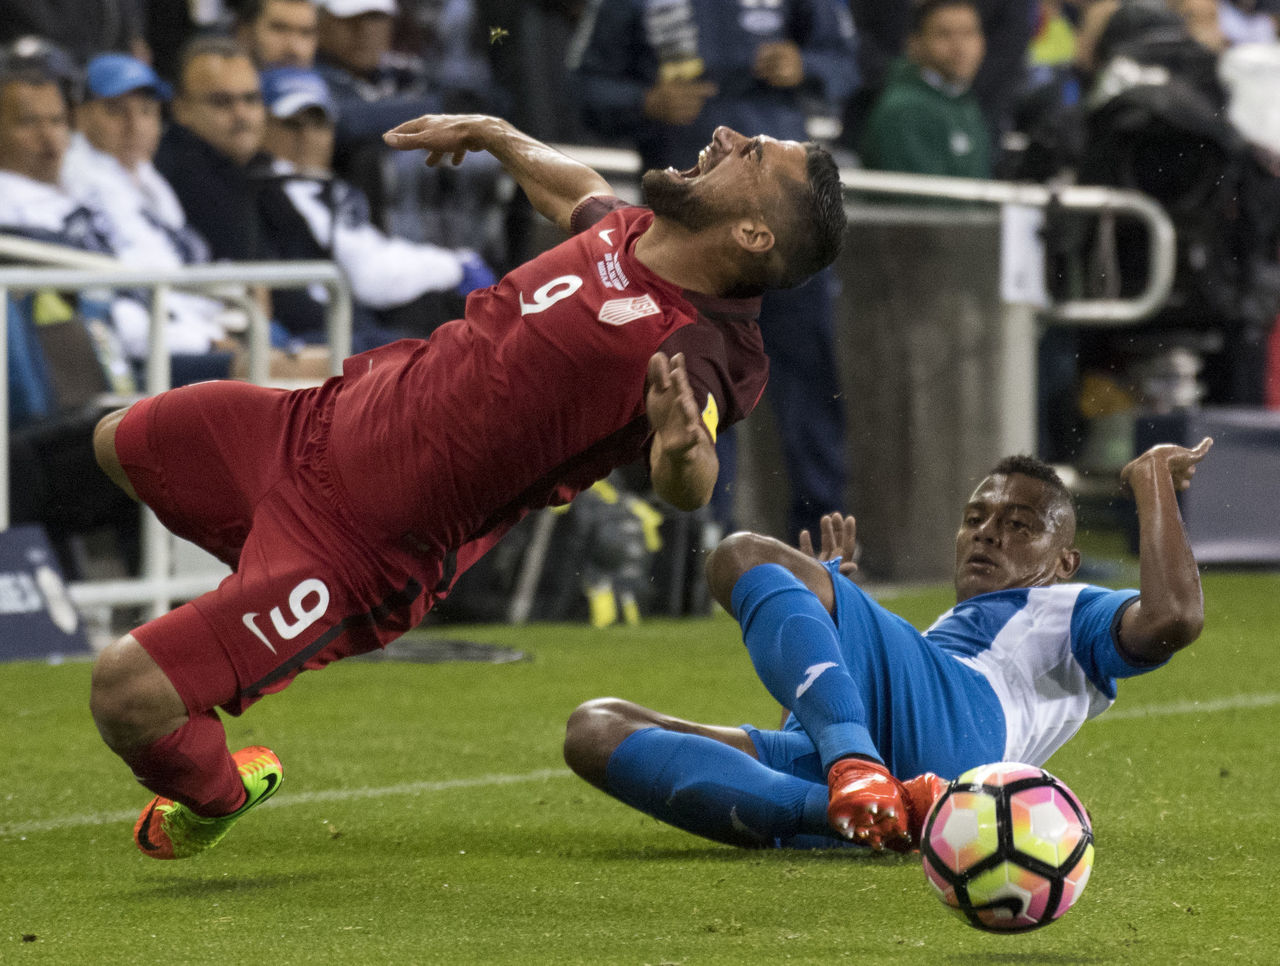 Cropped 2017 03 25t054255z 1431194430 nocid rtrmadp 3 soccer men s world cup soccer qualifier honduras at usa